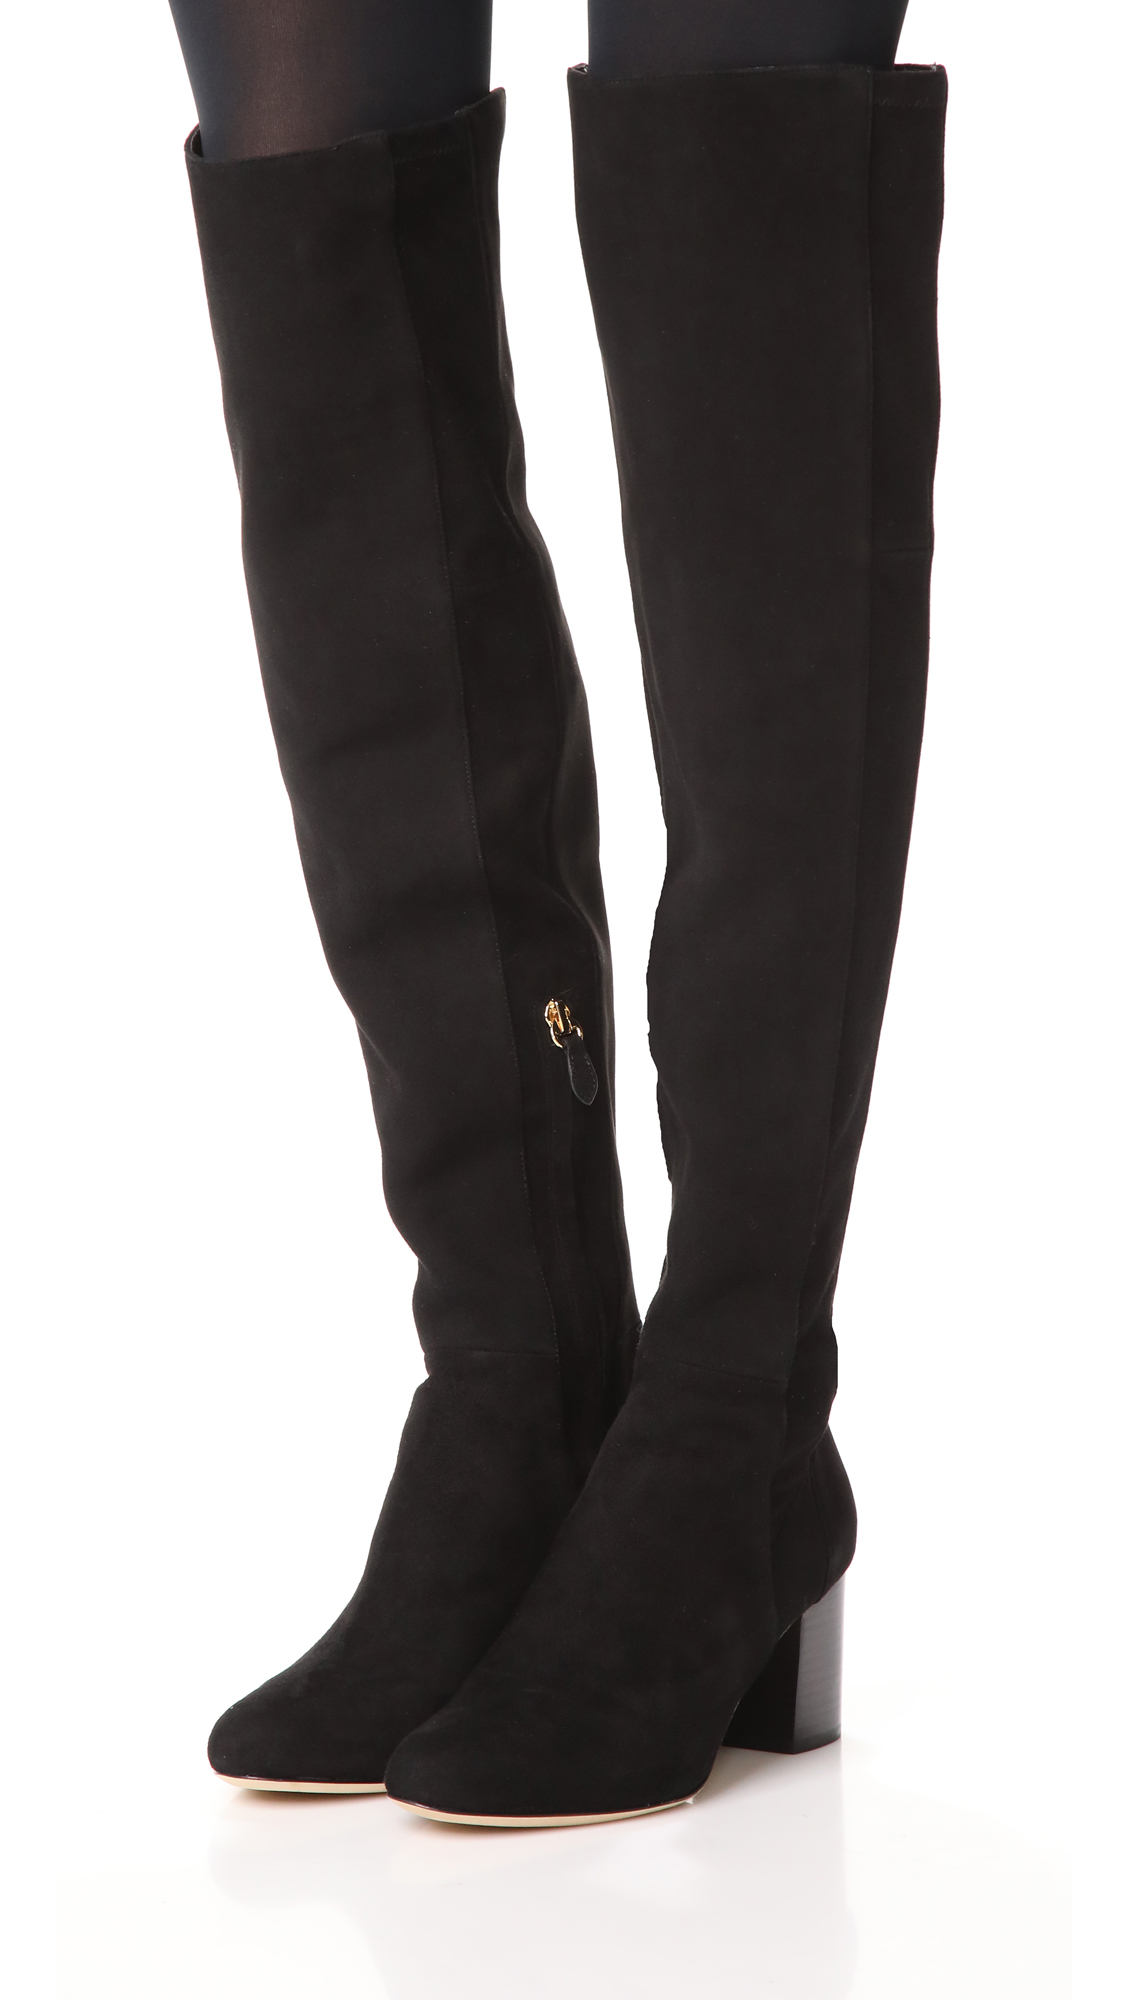 Buy Authentic Online Clearance Cheapest Price Diane Von Furstenberg Woman Suede Over-the-knee Boots Black Size 7.5 Diane Von F Exclusive Online g8AFuWP